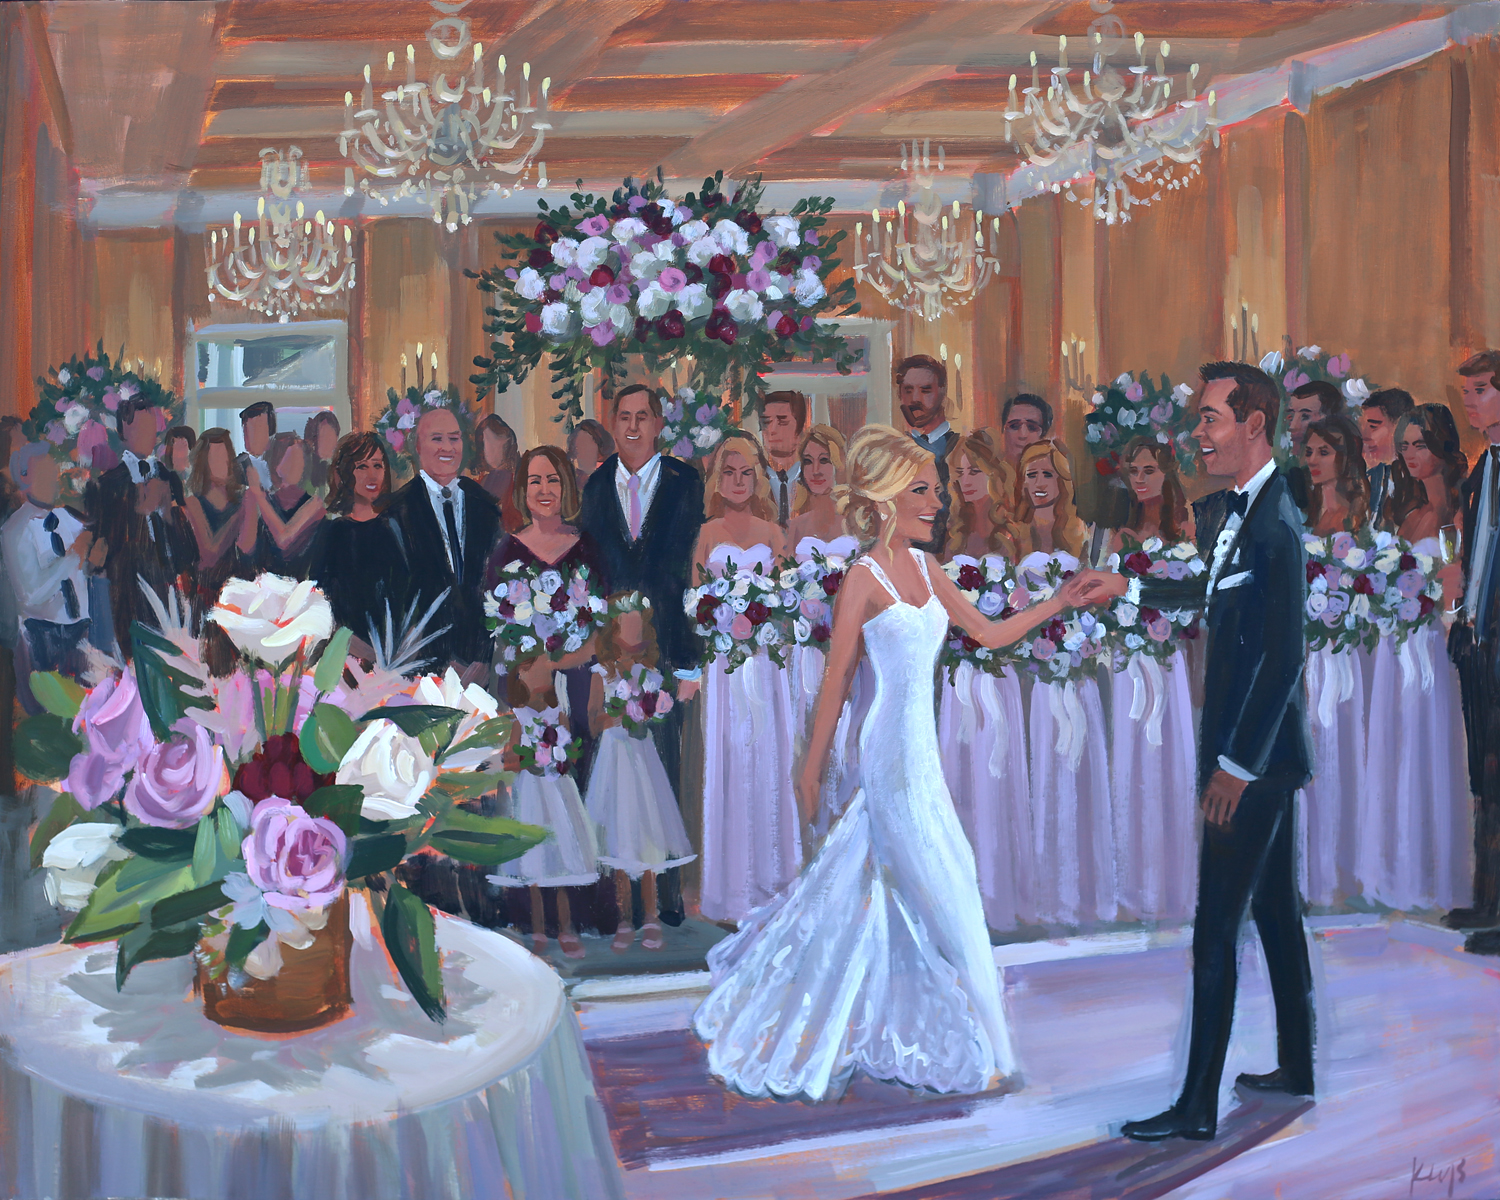 Live Wedding Painter, Ben Keys, captured Laura + Chris' first dance surrounded by their family and friends at Wilmington, NC's Cape Fear Country Club.